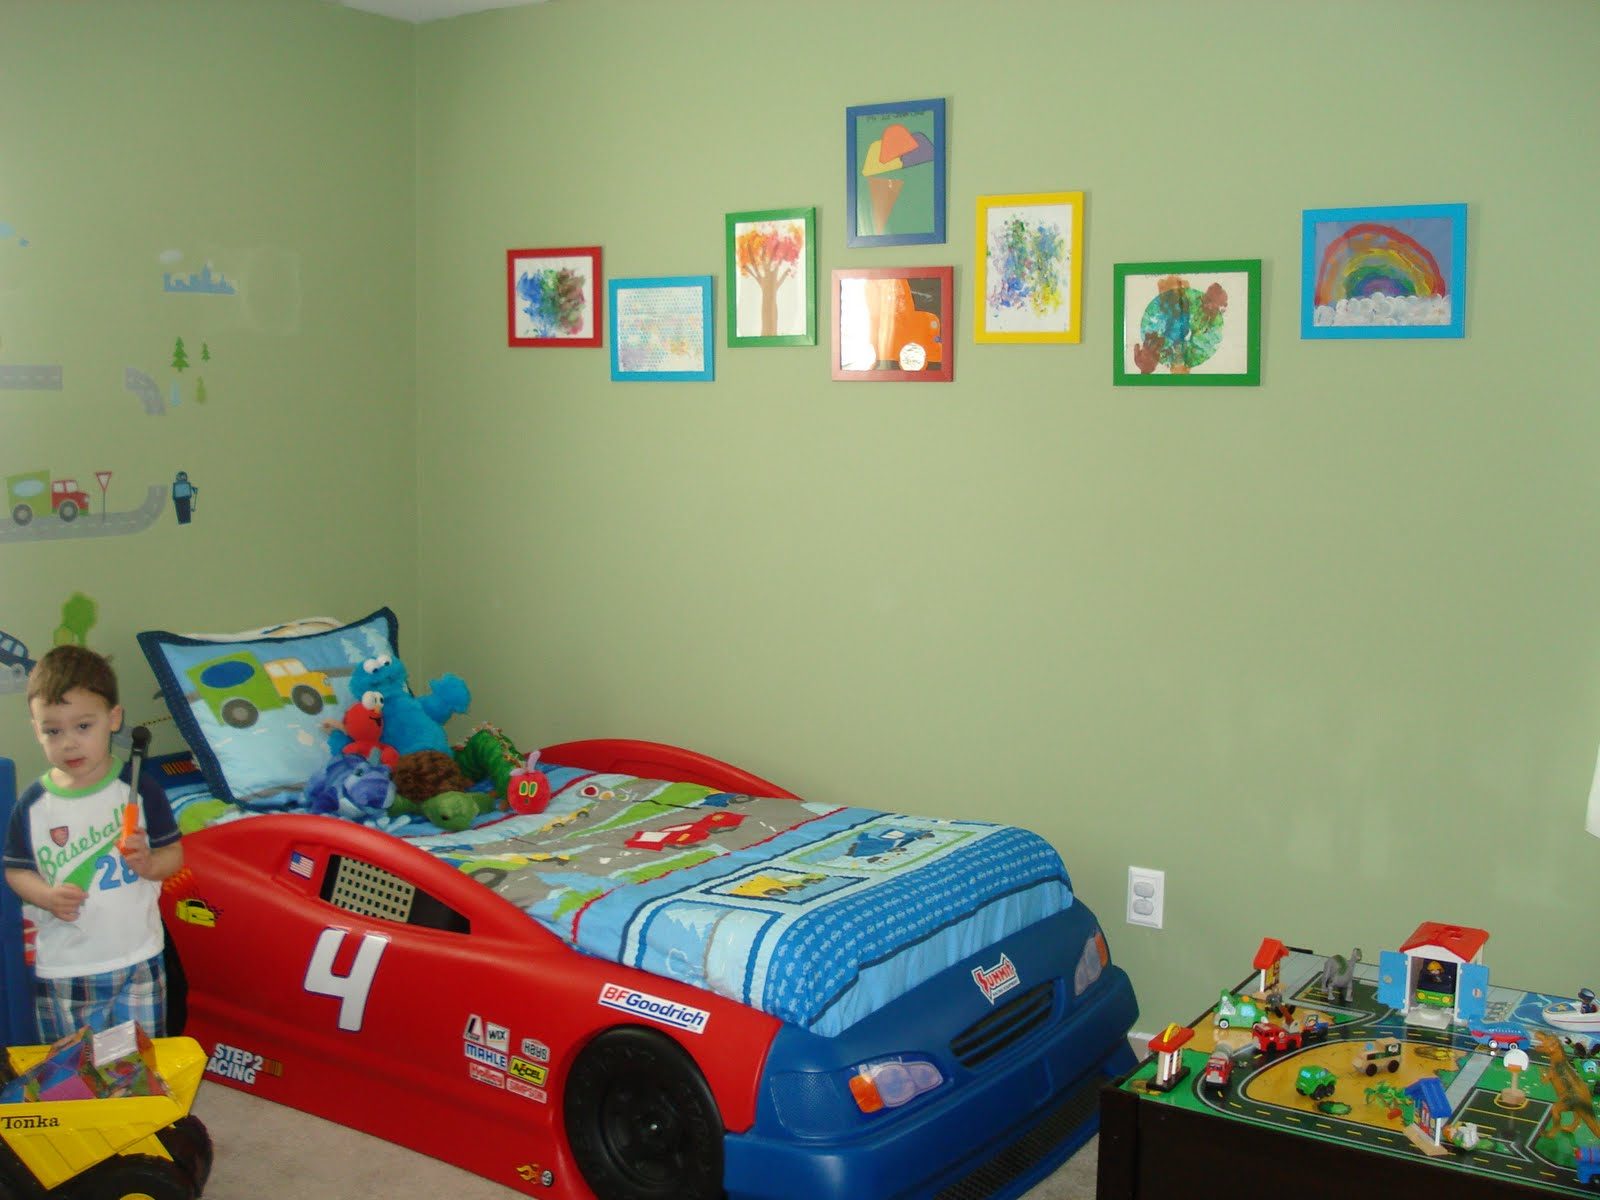 1 Year Old Room Ideas The Zatelli Zoo The Big Boy Room Reveal